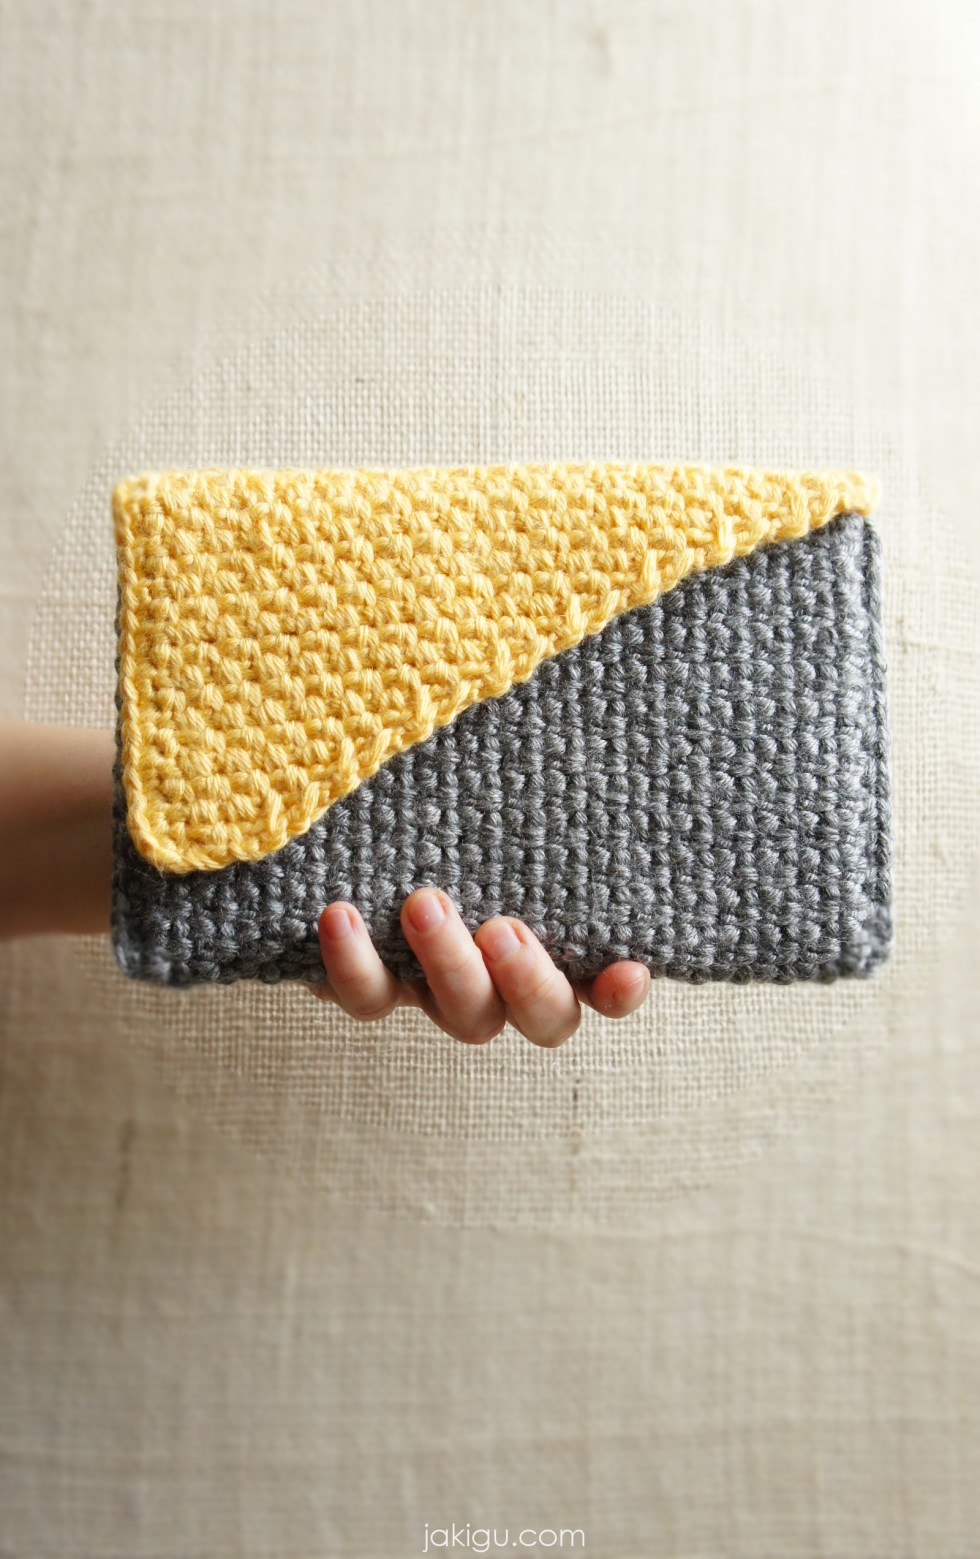 Crochet Handbag Crochet Pattern Preview By Jakigu